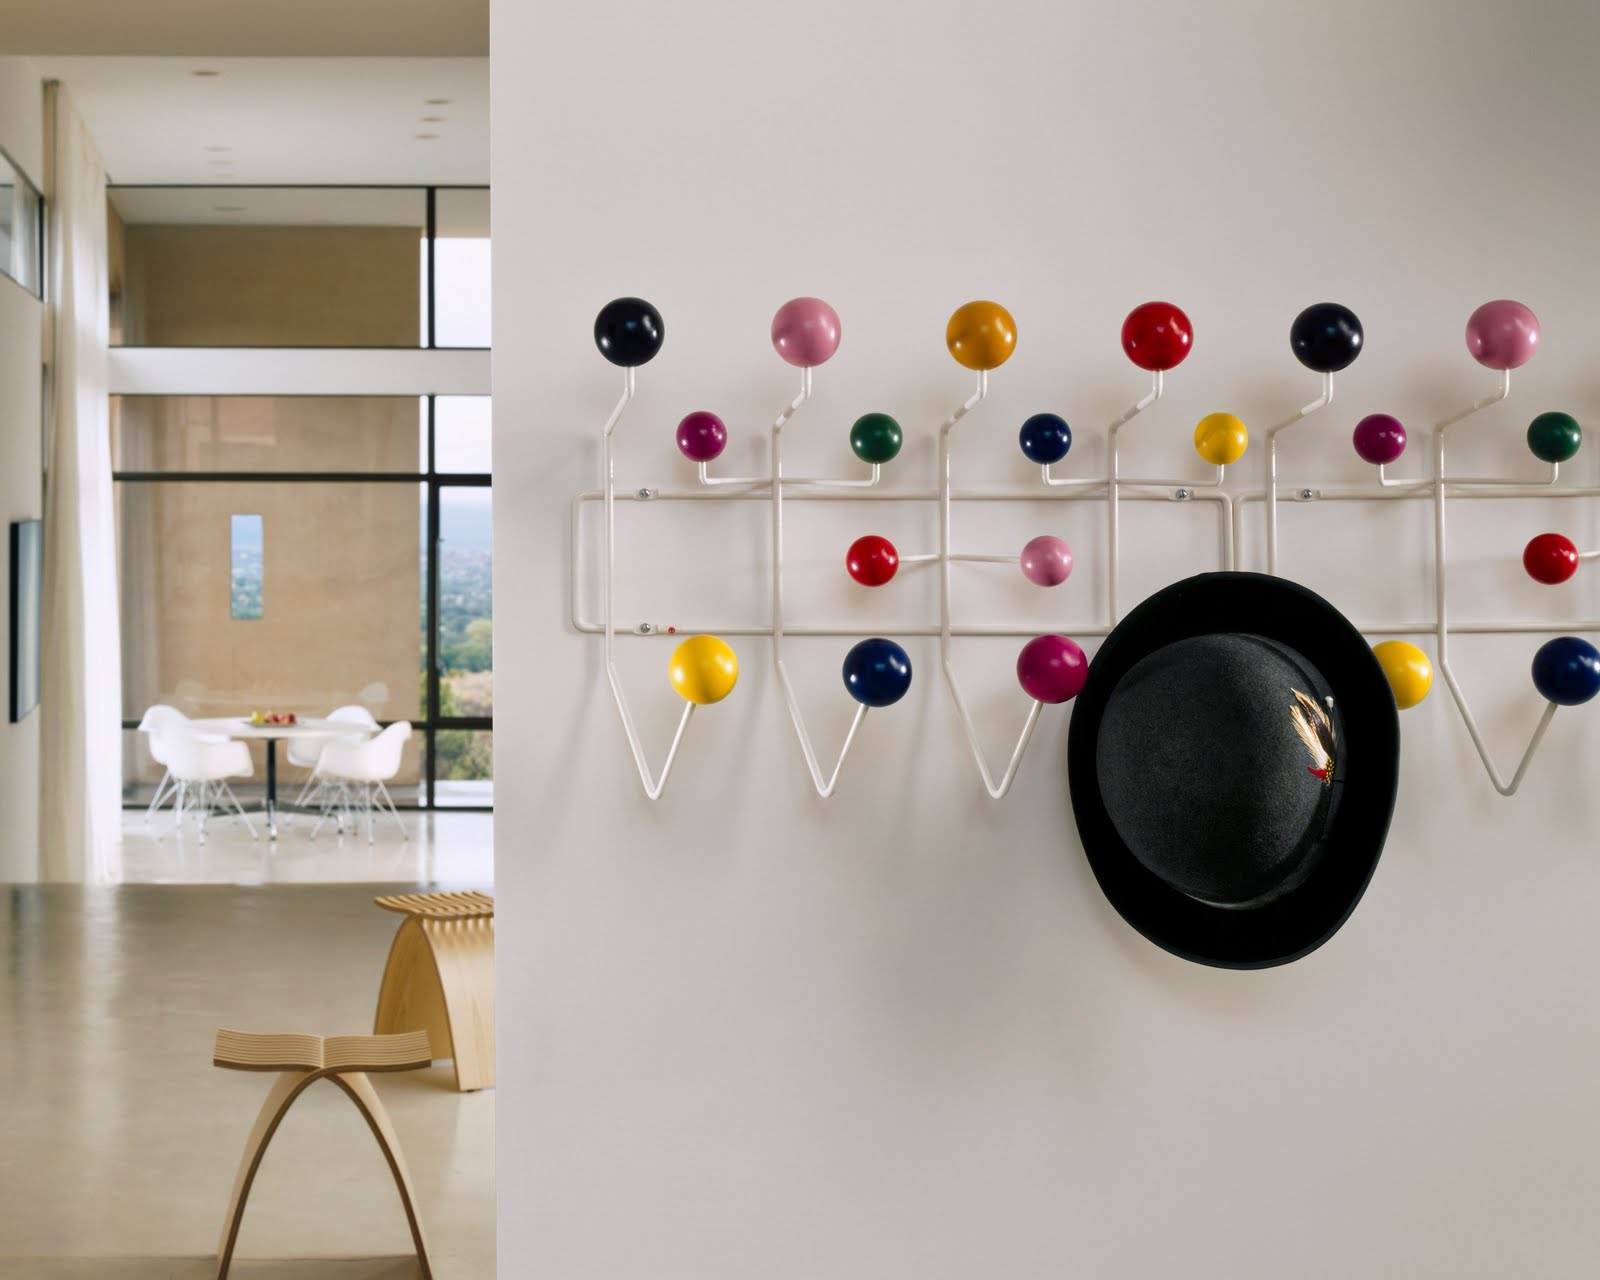 so i went on the hunt and after shopping many online stores i realized that most of the modern coat racks that i liked were made by one company addesso